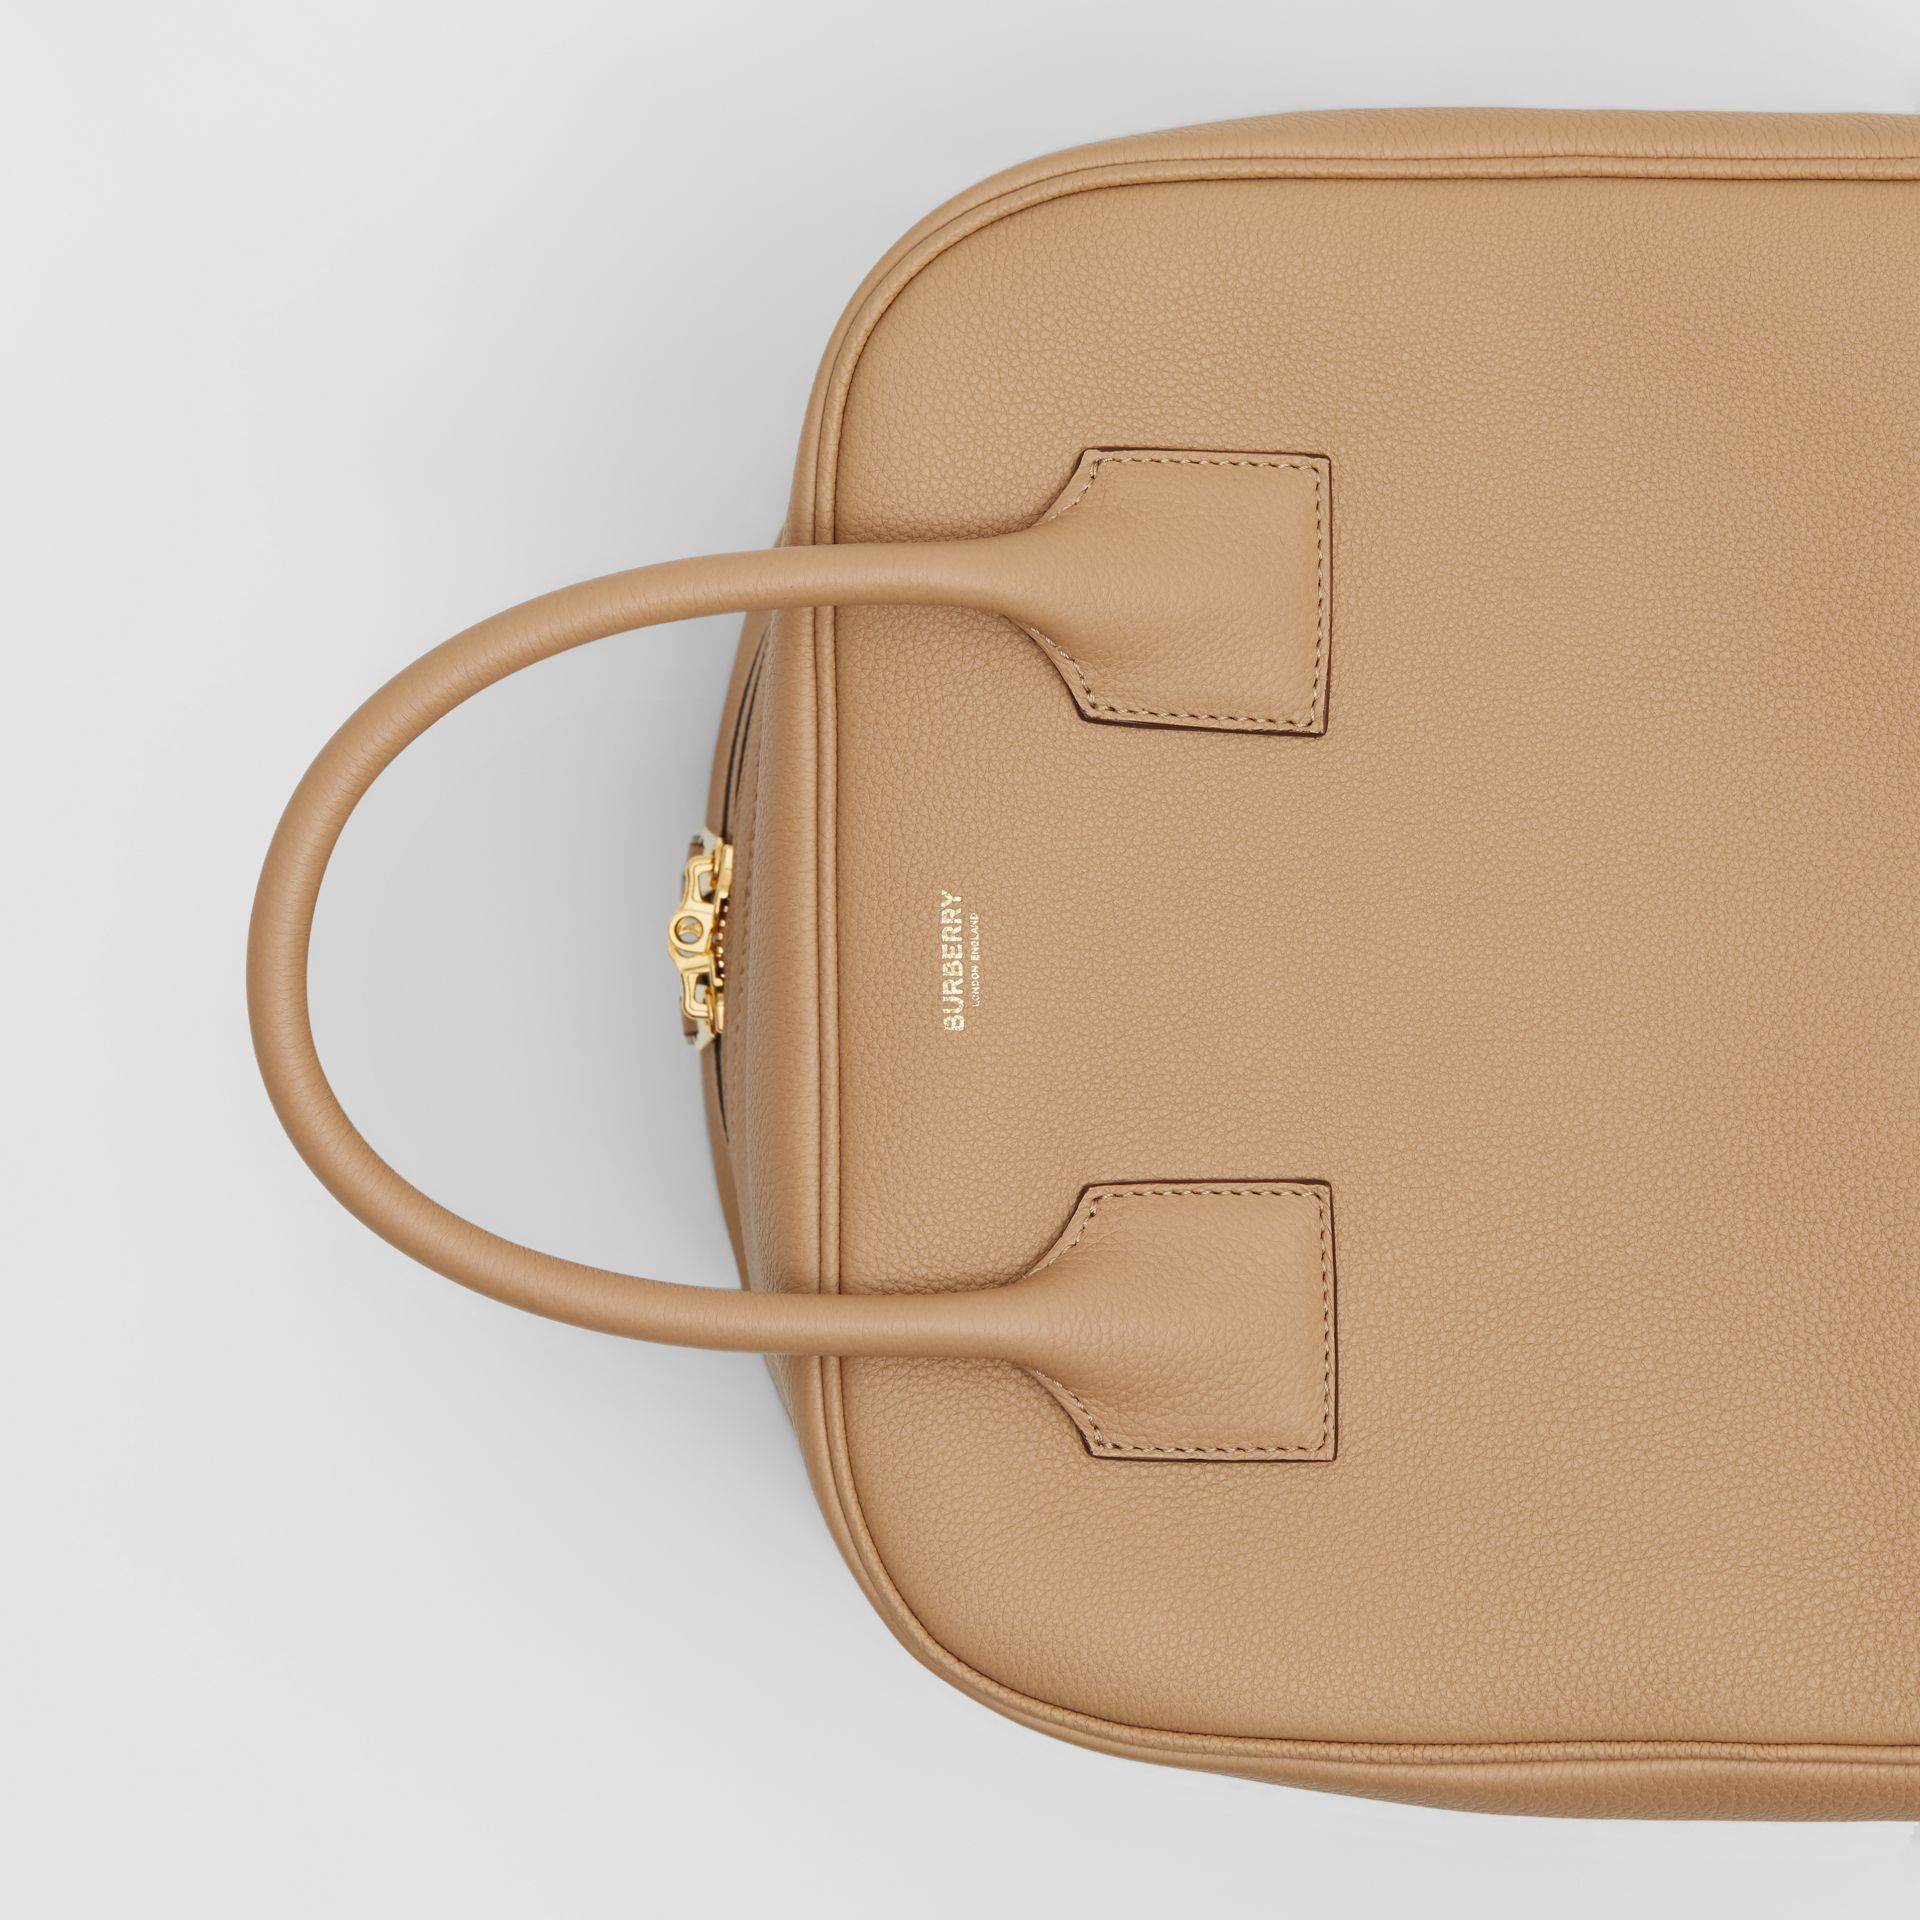 Medium Leather Cube Bag in Biscuit - Women | Burberry - gallery image 1